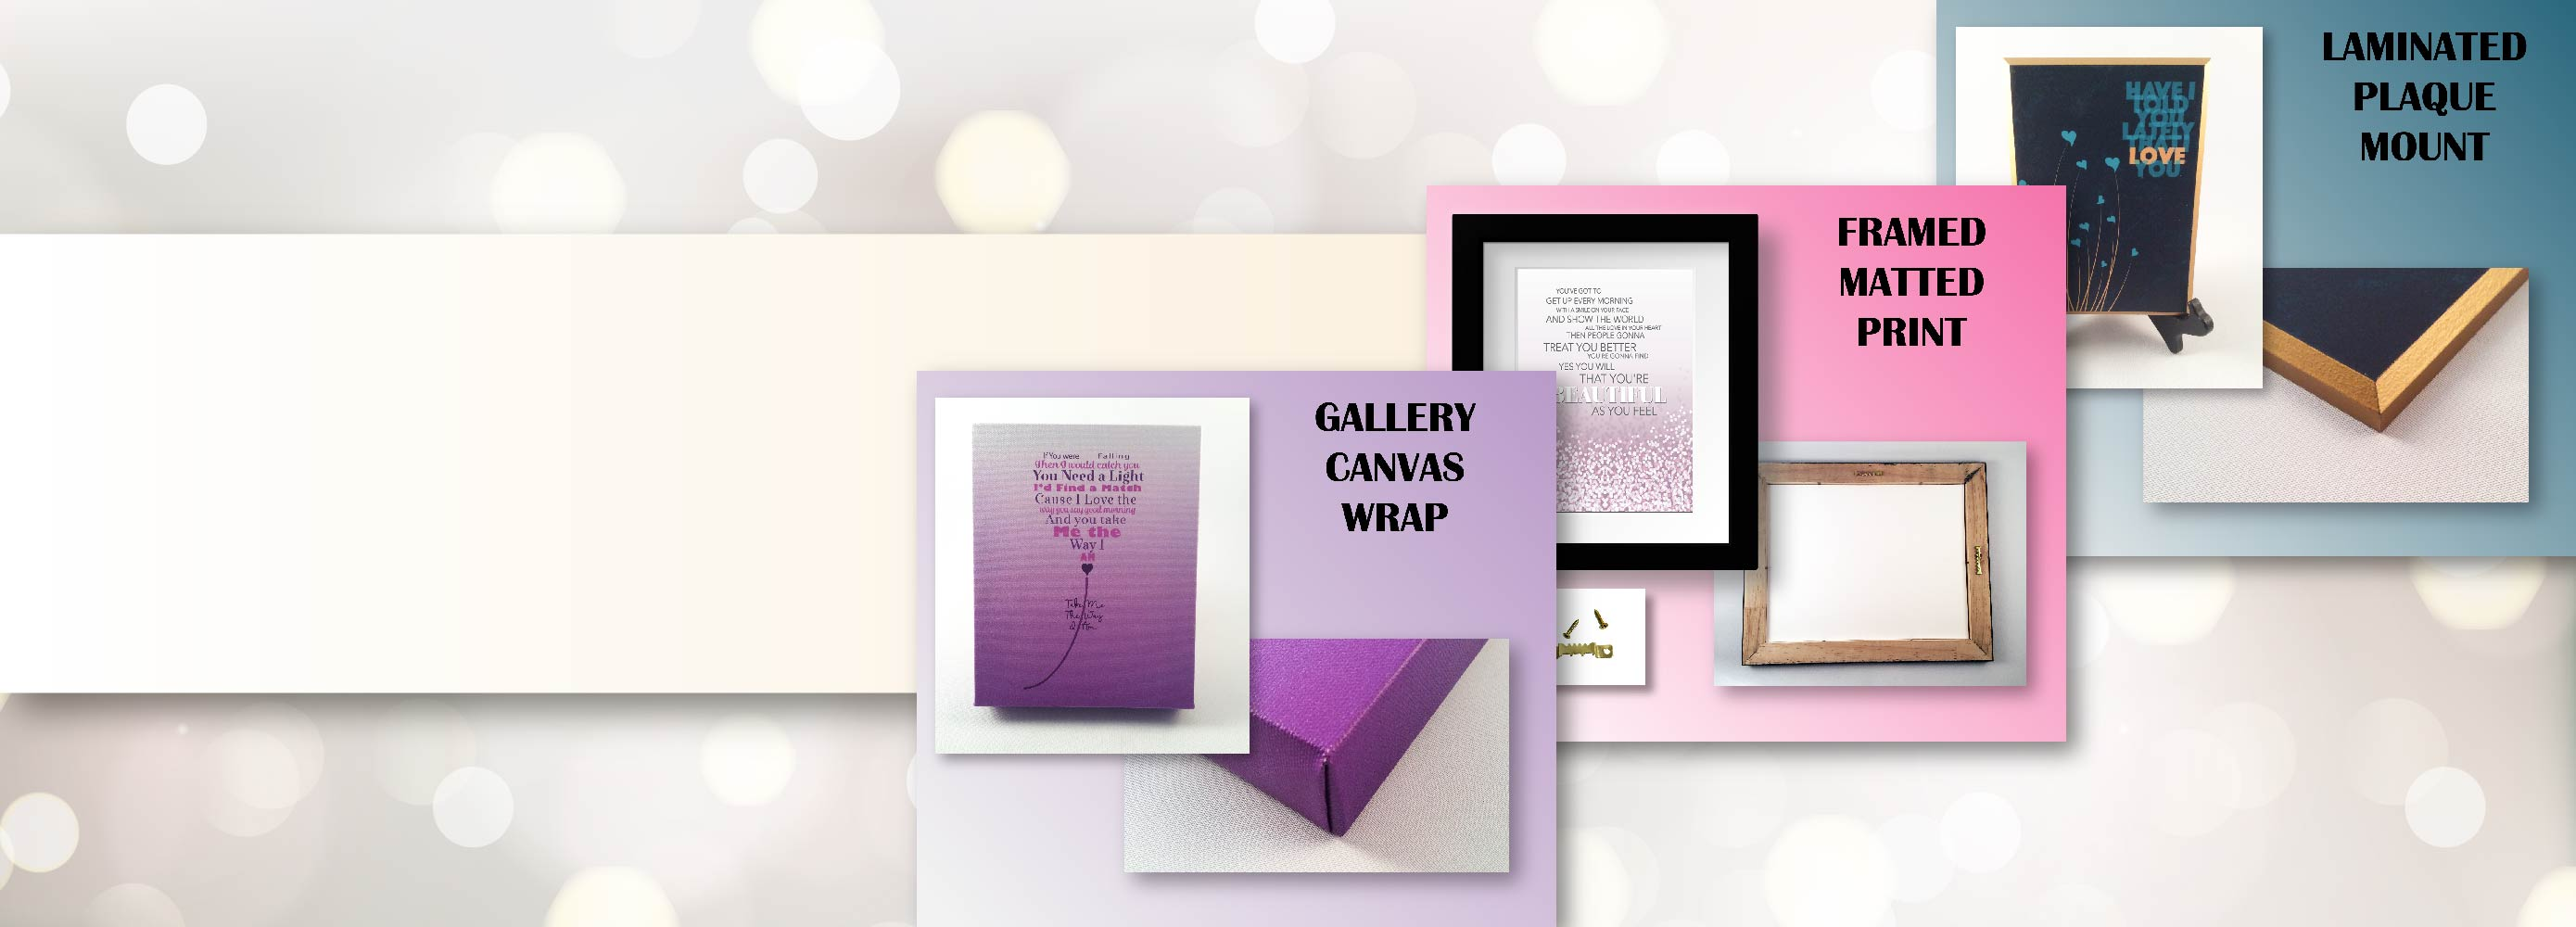 Song Lyrics Art Wall Decor for Music Enthusiasts available in print, framed print, canvas wrap and laminated plaque mount